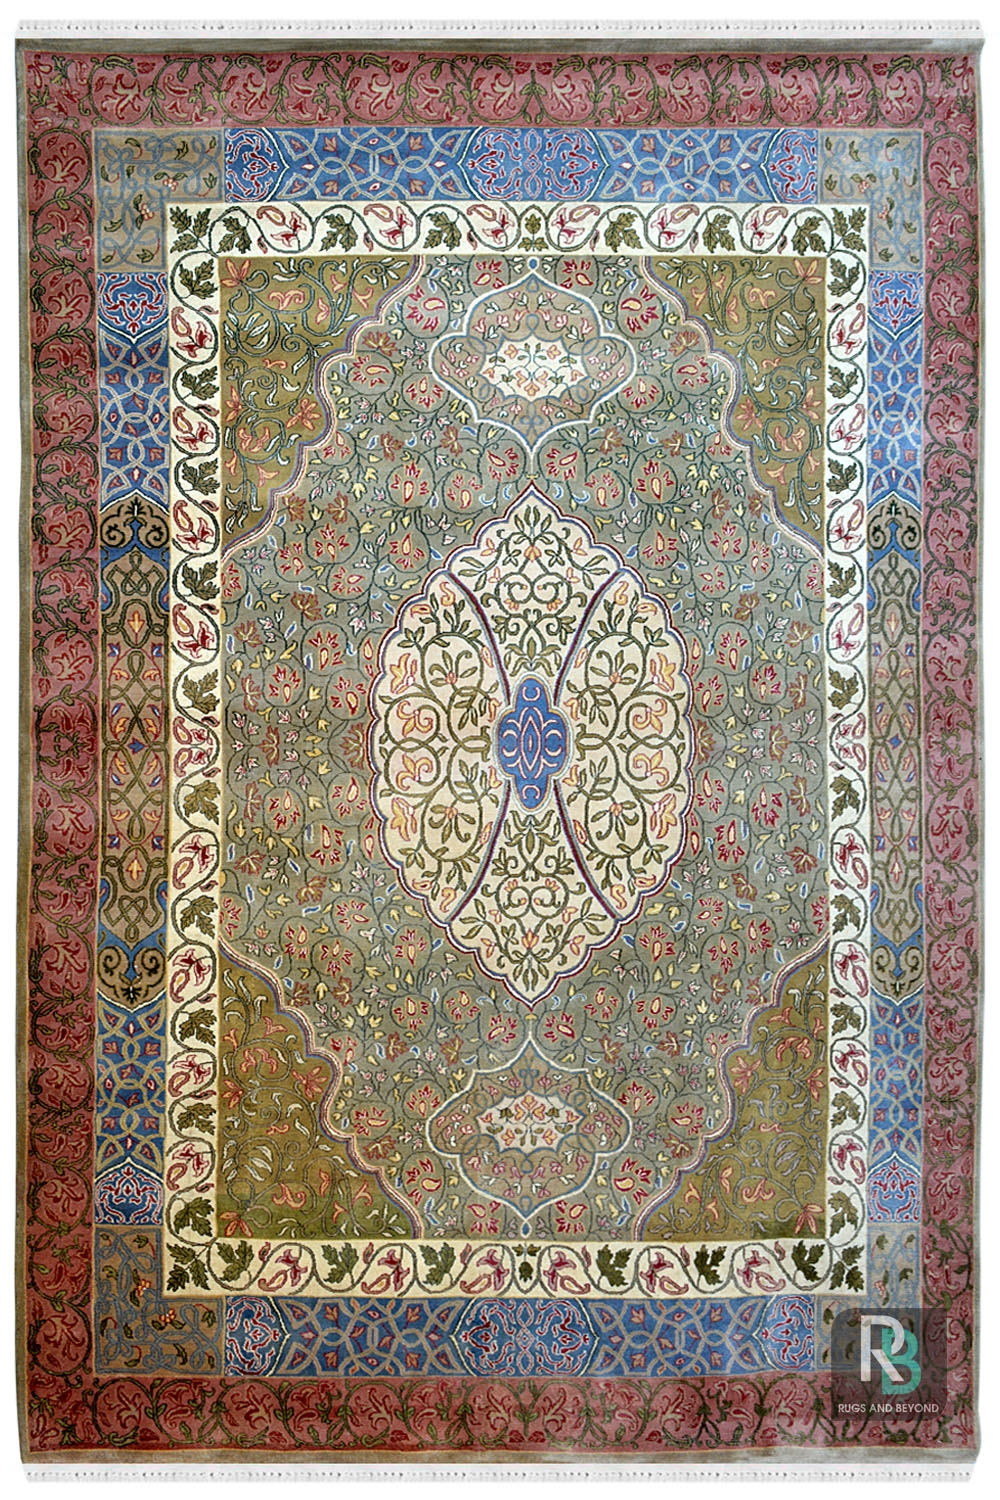 dual oval handmade wool carpet and rugs online at rugs and beyond. Black Bedroom Furniture Sets. Home Design Ideas